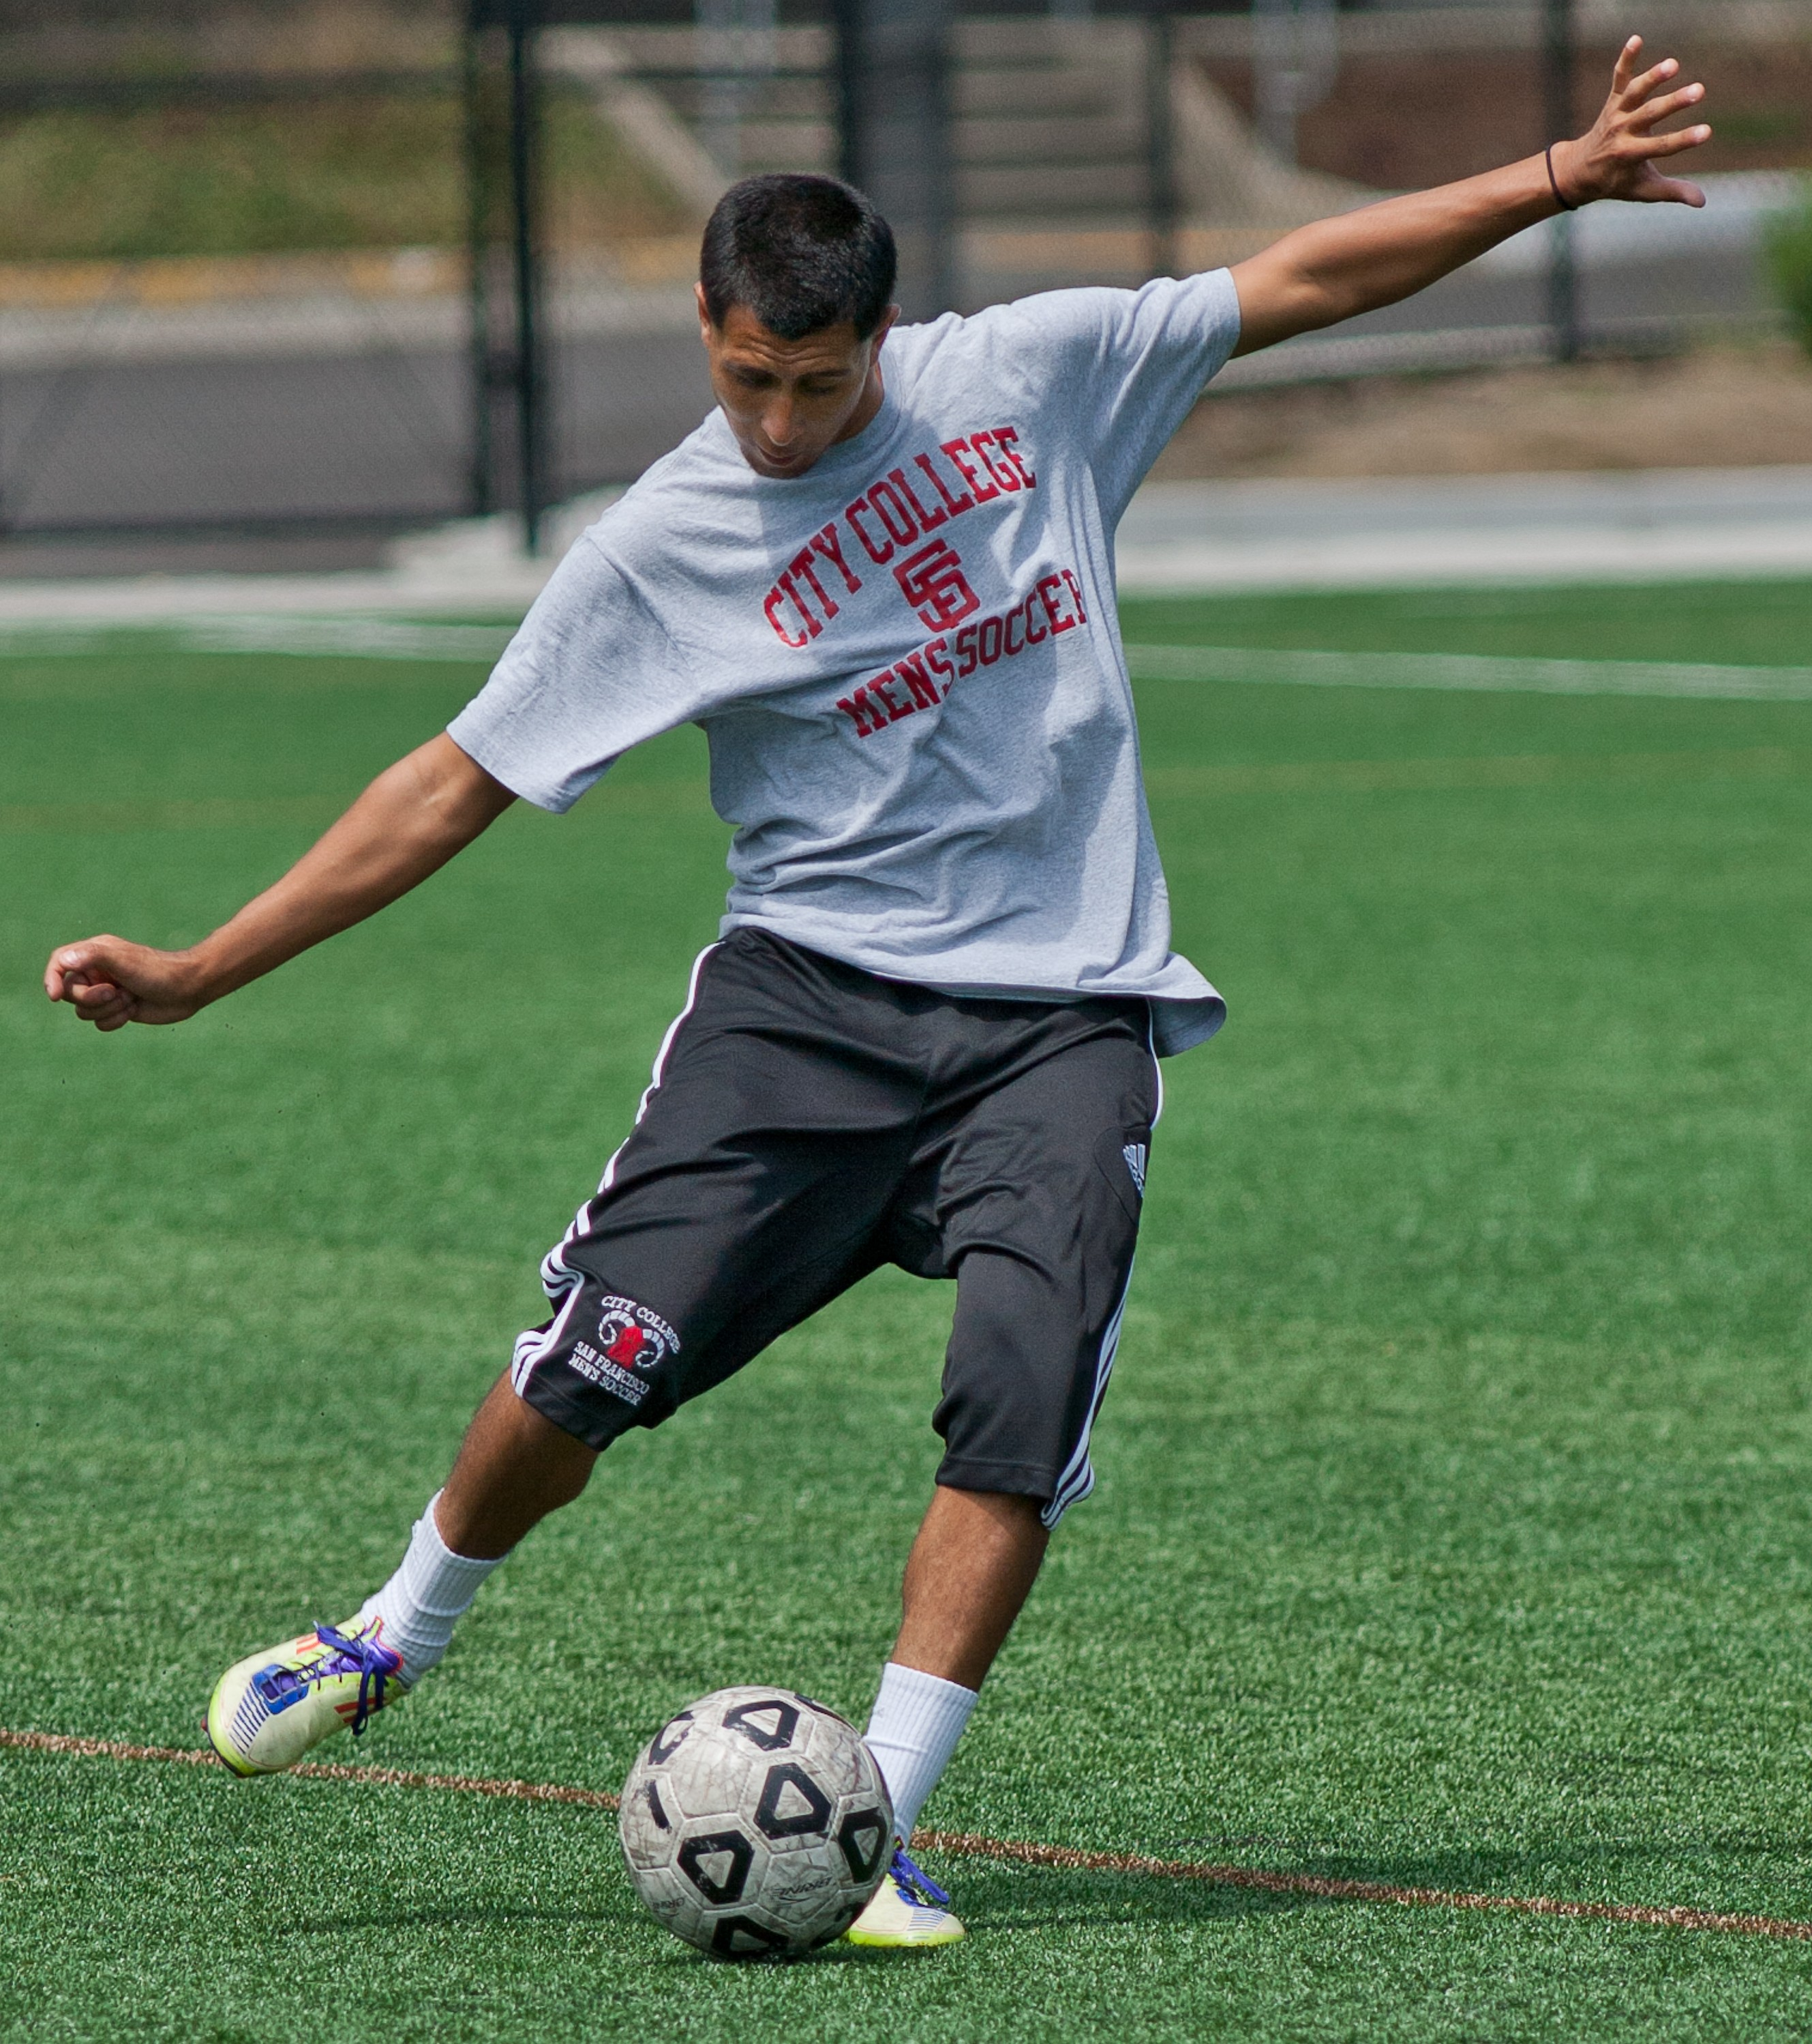 Sophomore midfielder Alfredo Casteneda executes a one touch pass during preseason soccer practice at Ocean Campus on Aug. 13. The men's soccer season begins with an Ocean Campus home scrimmage on Tuesday, Aug. 21, against the Academy of Art at 3:30 p.m. Photo by James Fanucchi/The Guardsman